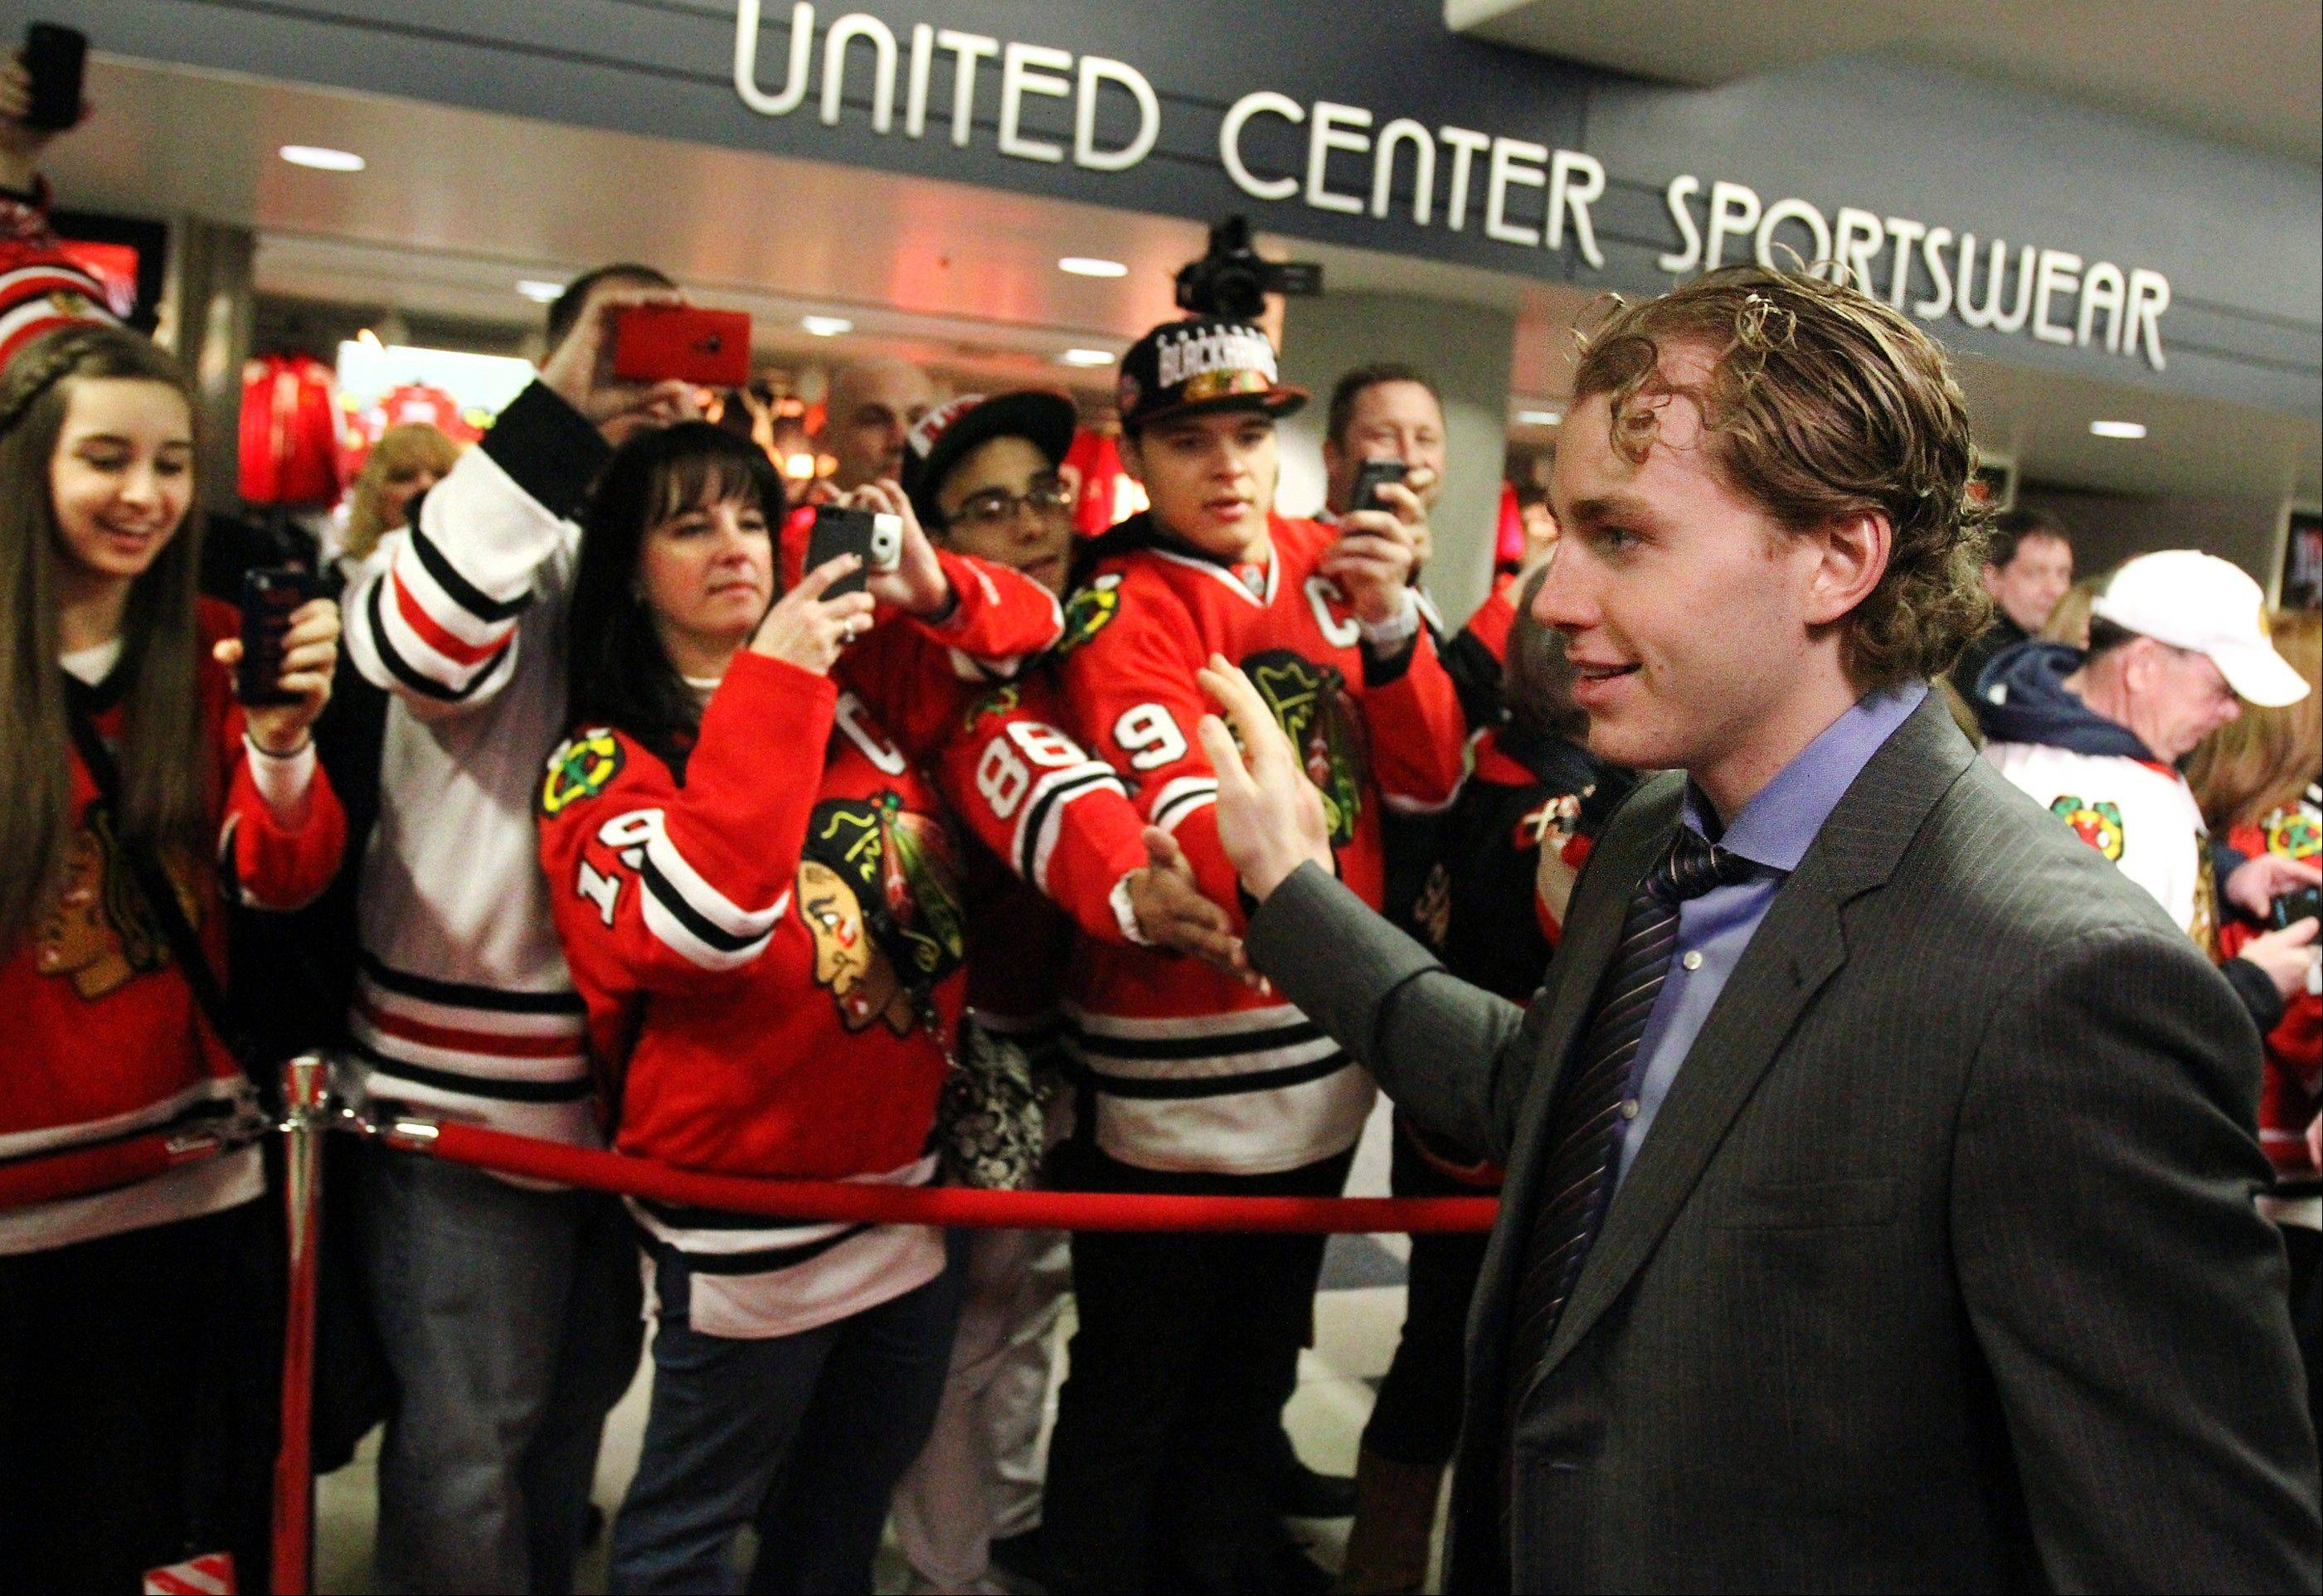 Chicago Blackhawks right wing Patrick Kane high-fives fans as he walks a red carpet introduction before their home opener NHL hockey game against the St. Louis Blues, Tuesday, Jan. 22, 2013, in Chicago.